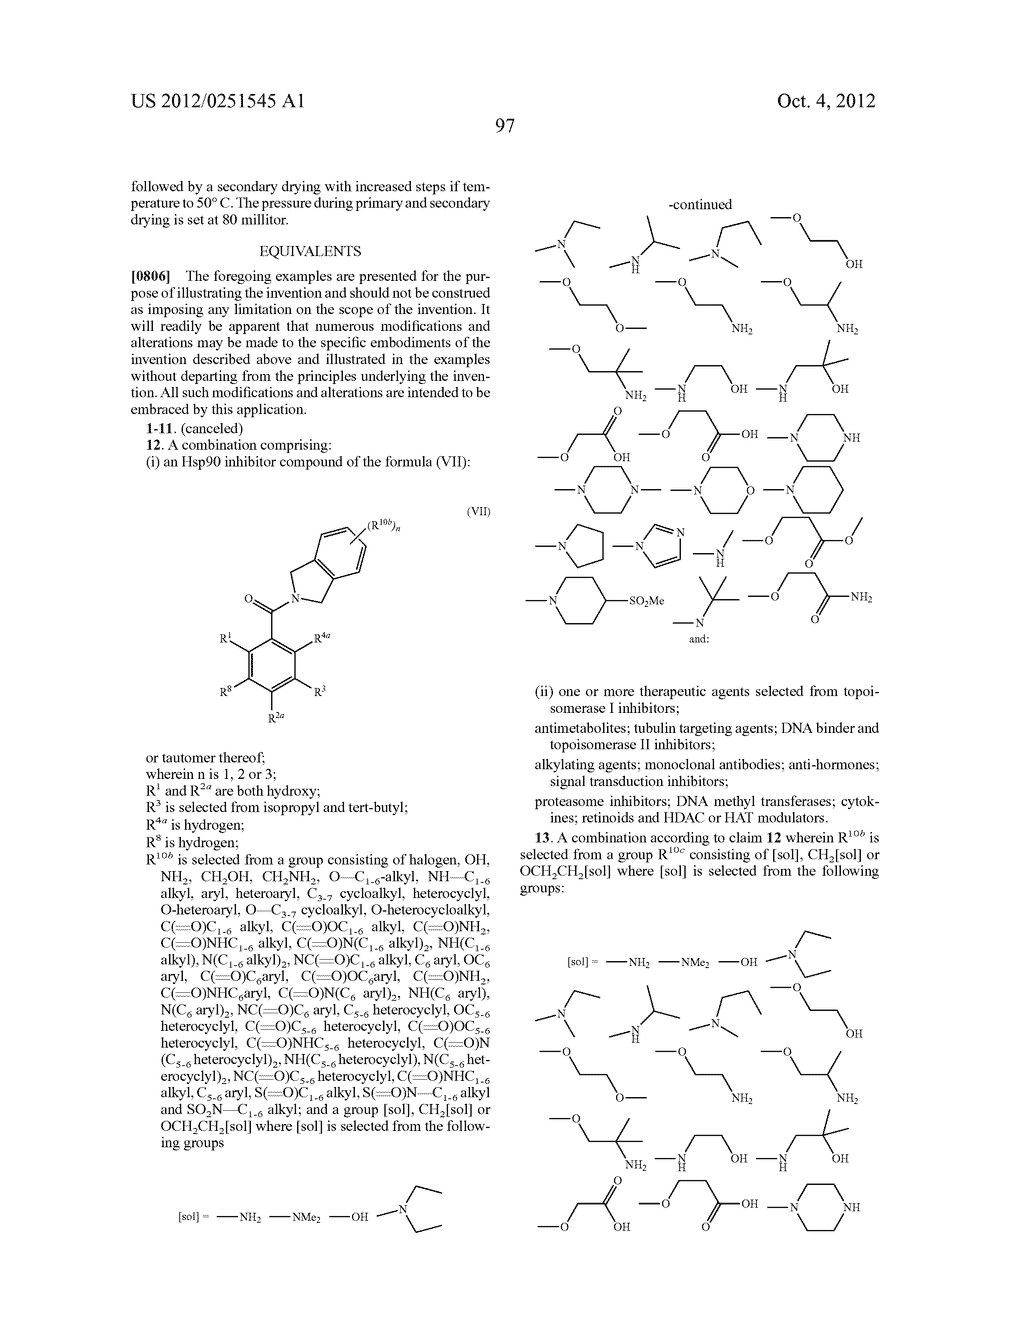 Therapeutic Combinations Of Hydroxybenzamide Derivatives As Inhibitors Of     HSP90 - diagram, schematic, and image 98